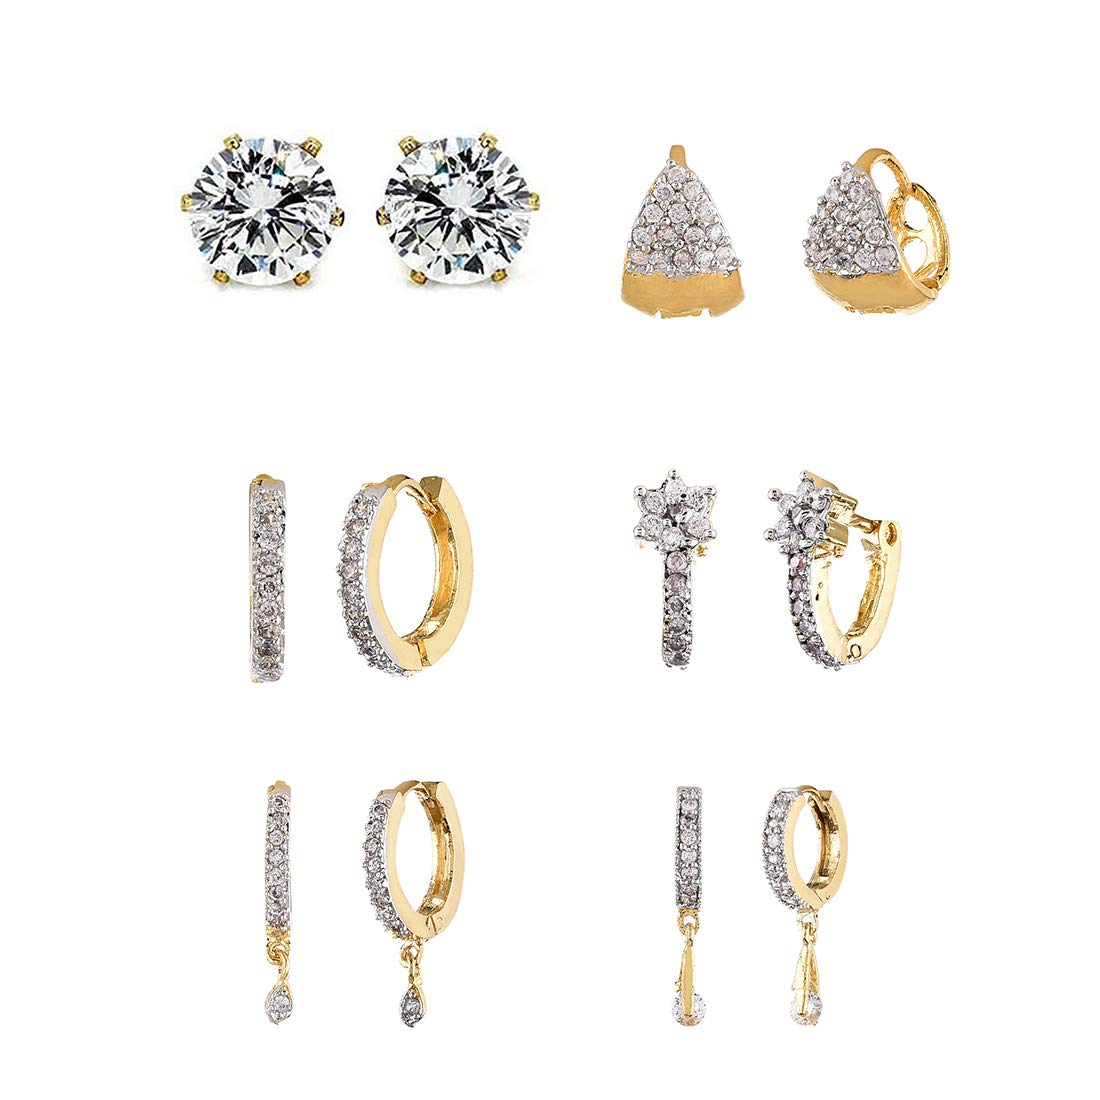 Zeneme Combo of Trendy American Diamond Earrings Jewellery